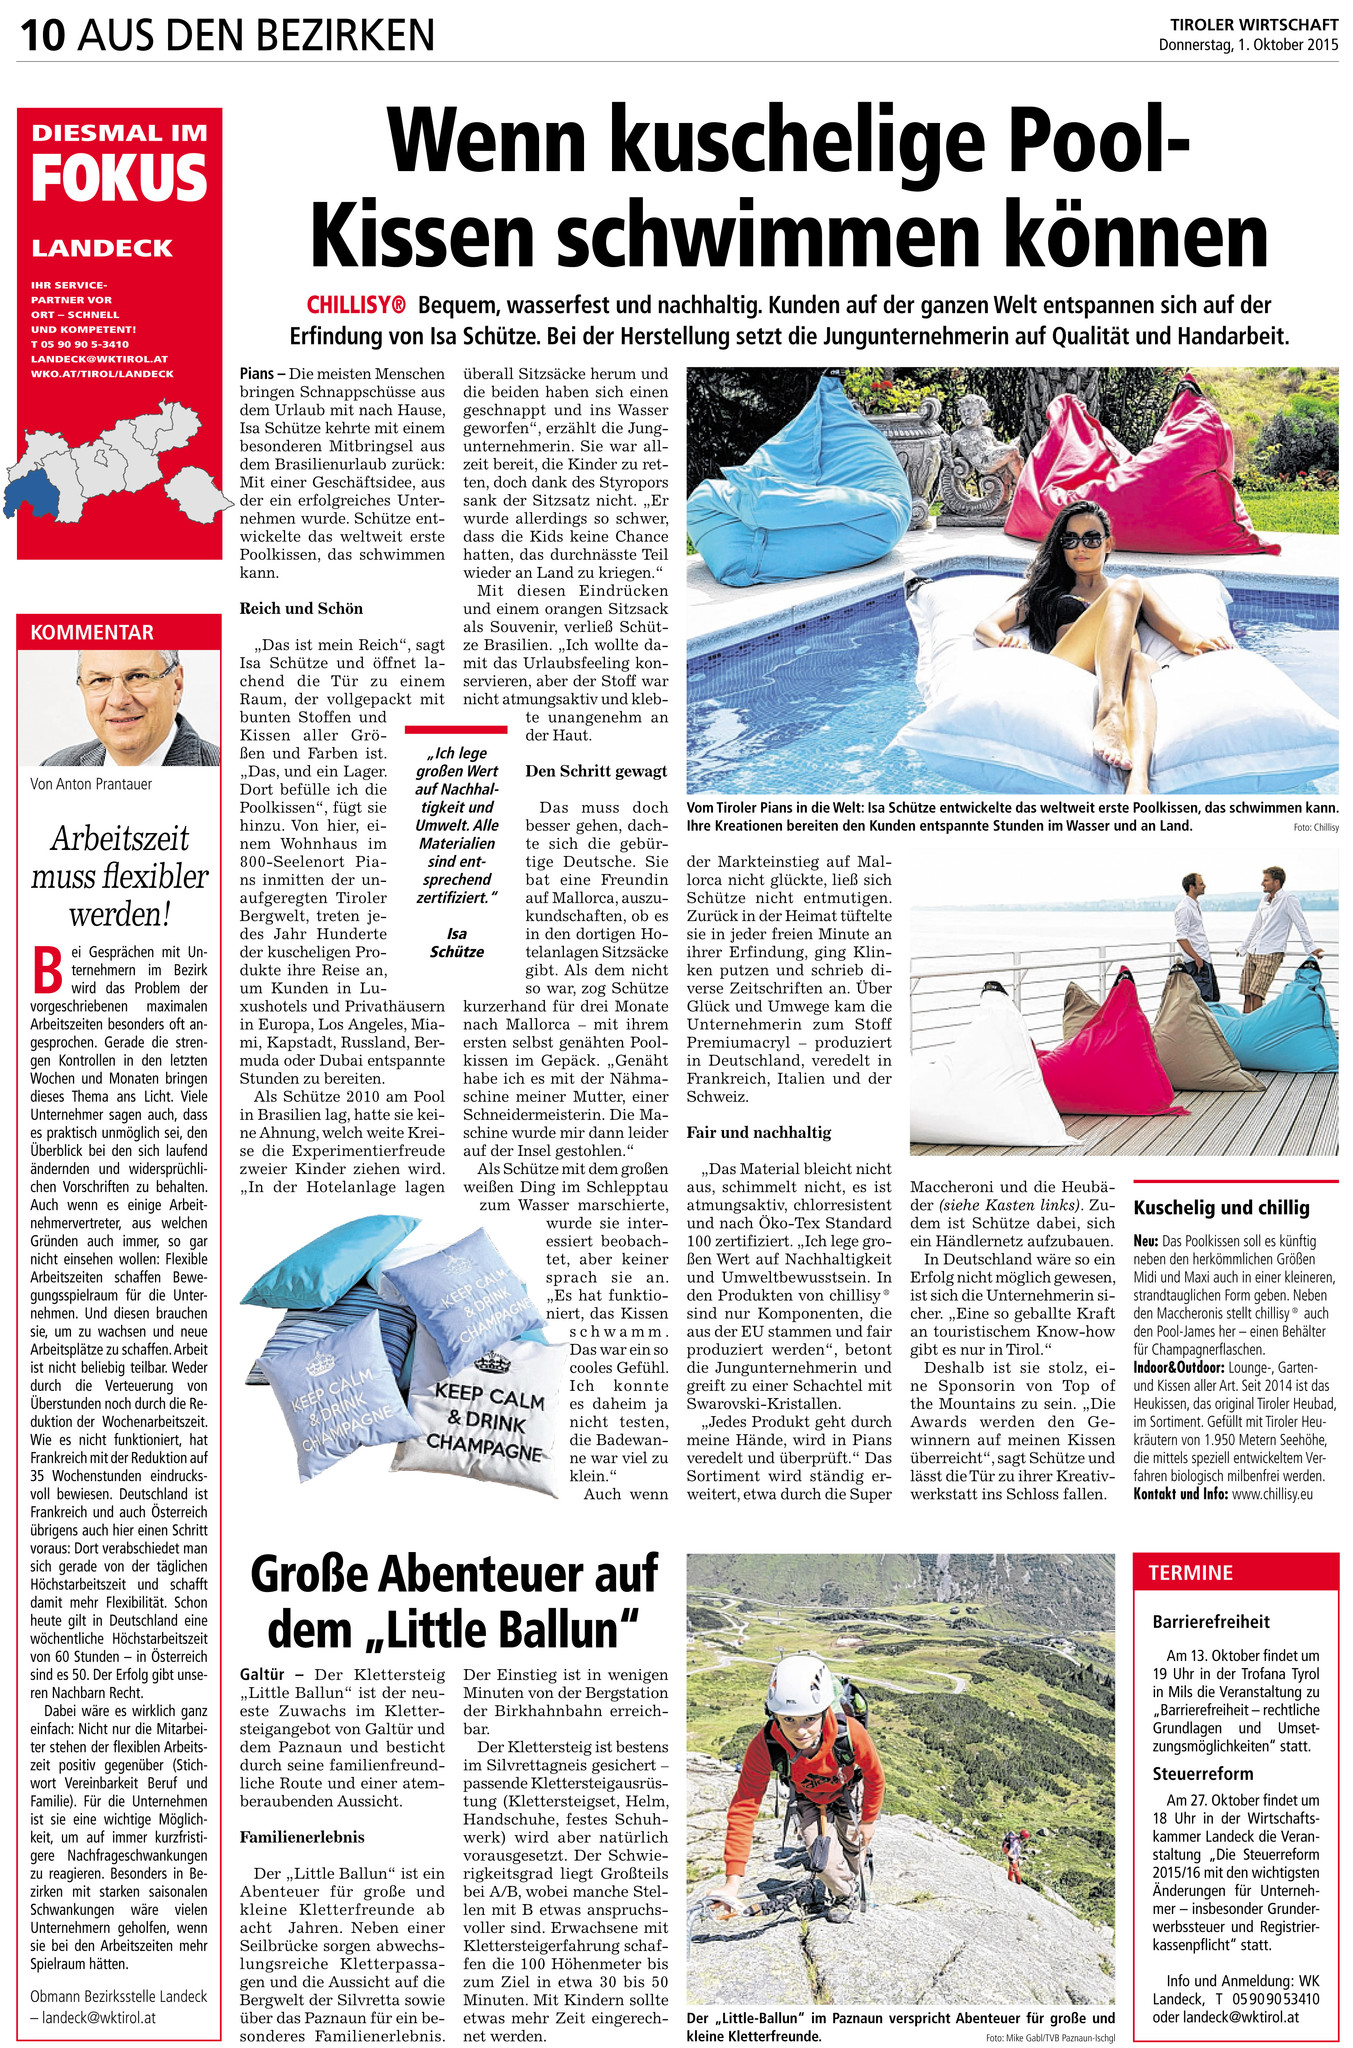 chillisy Press Tyrolean business newspaper